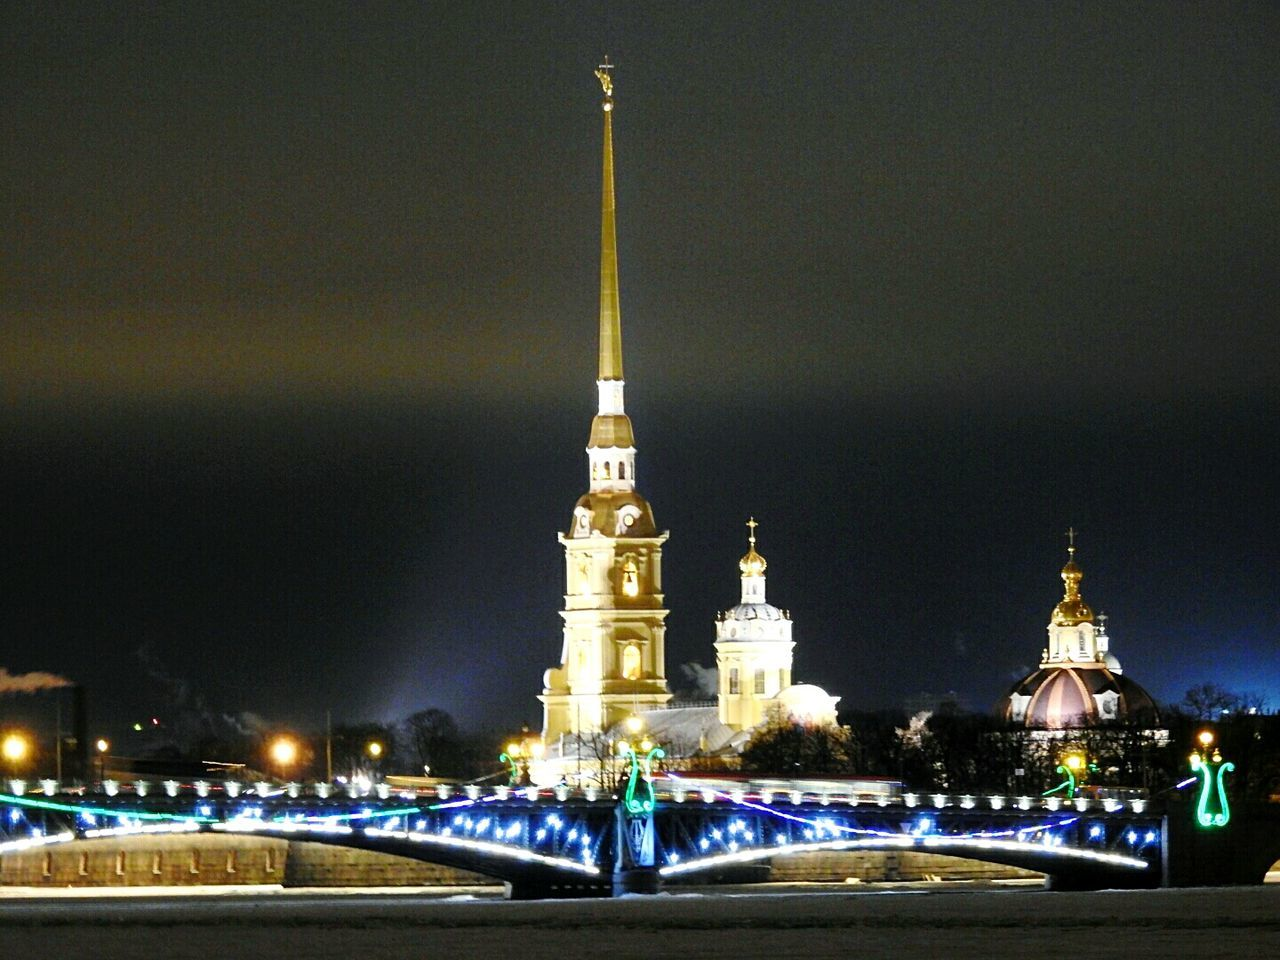 Tower Petropavlovskayafortress Night City Travel Destinations Illuminated Cultures Architecture Sky Troickii Bridge Street Photography Finding New Frontiers Happy New Year 2017 Colors Of Sankt-Peterburg Sankt-Petersburg Russia